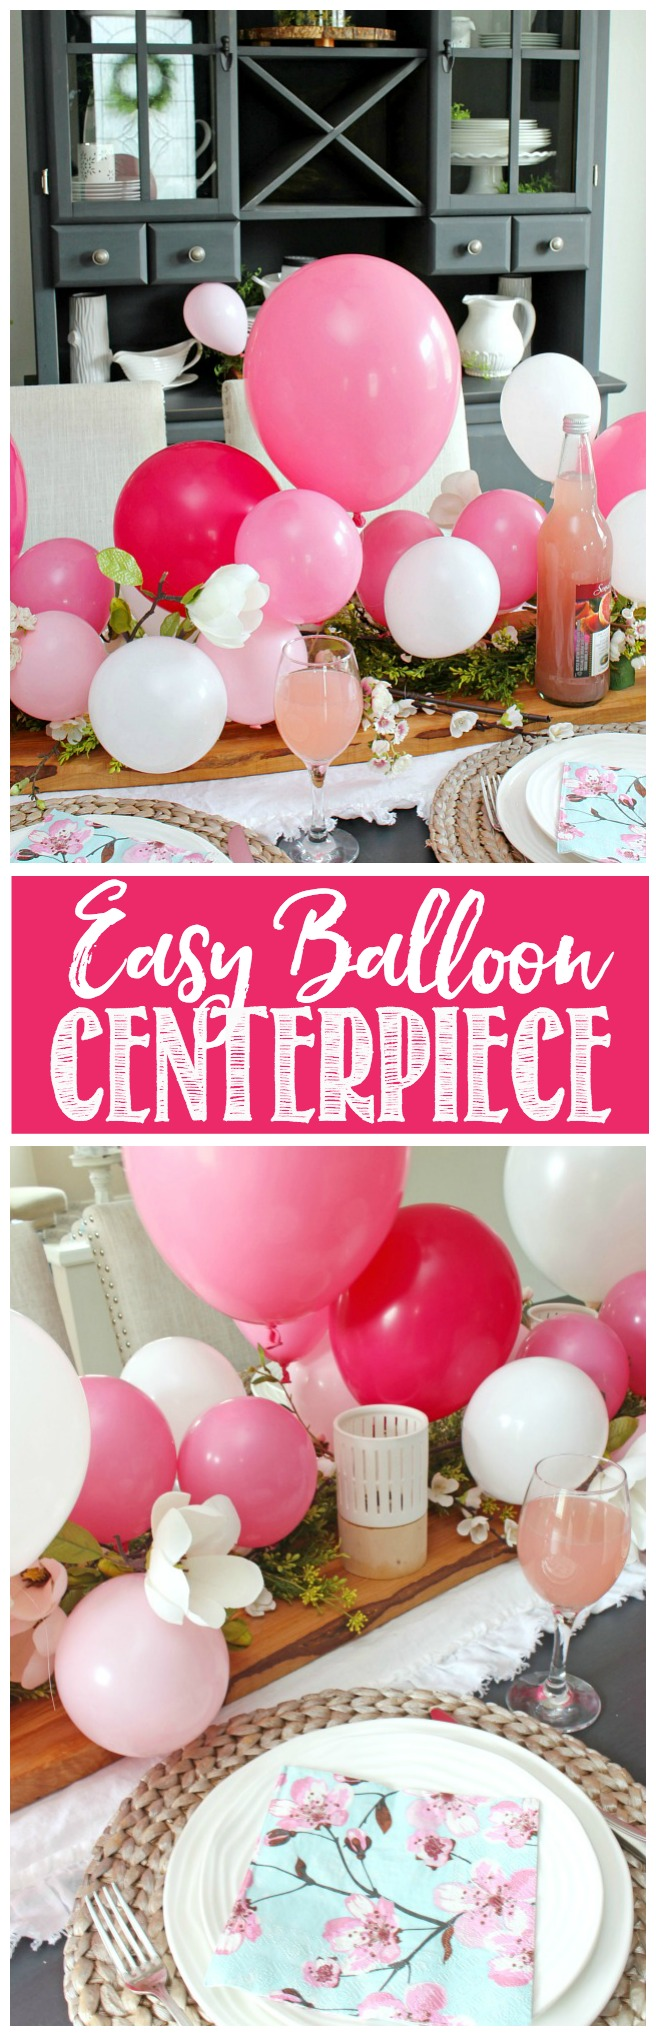 Pretty balloon centepiece using pink and white balloons and faux greenery and flowers.